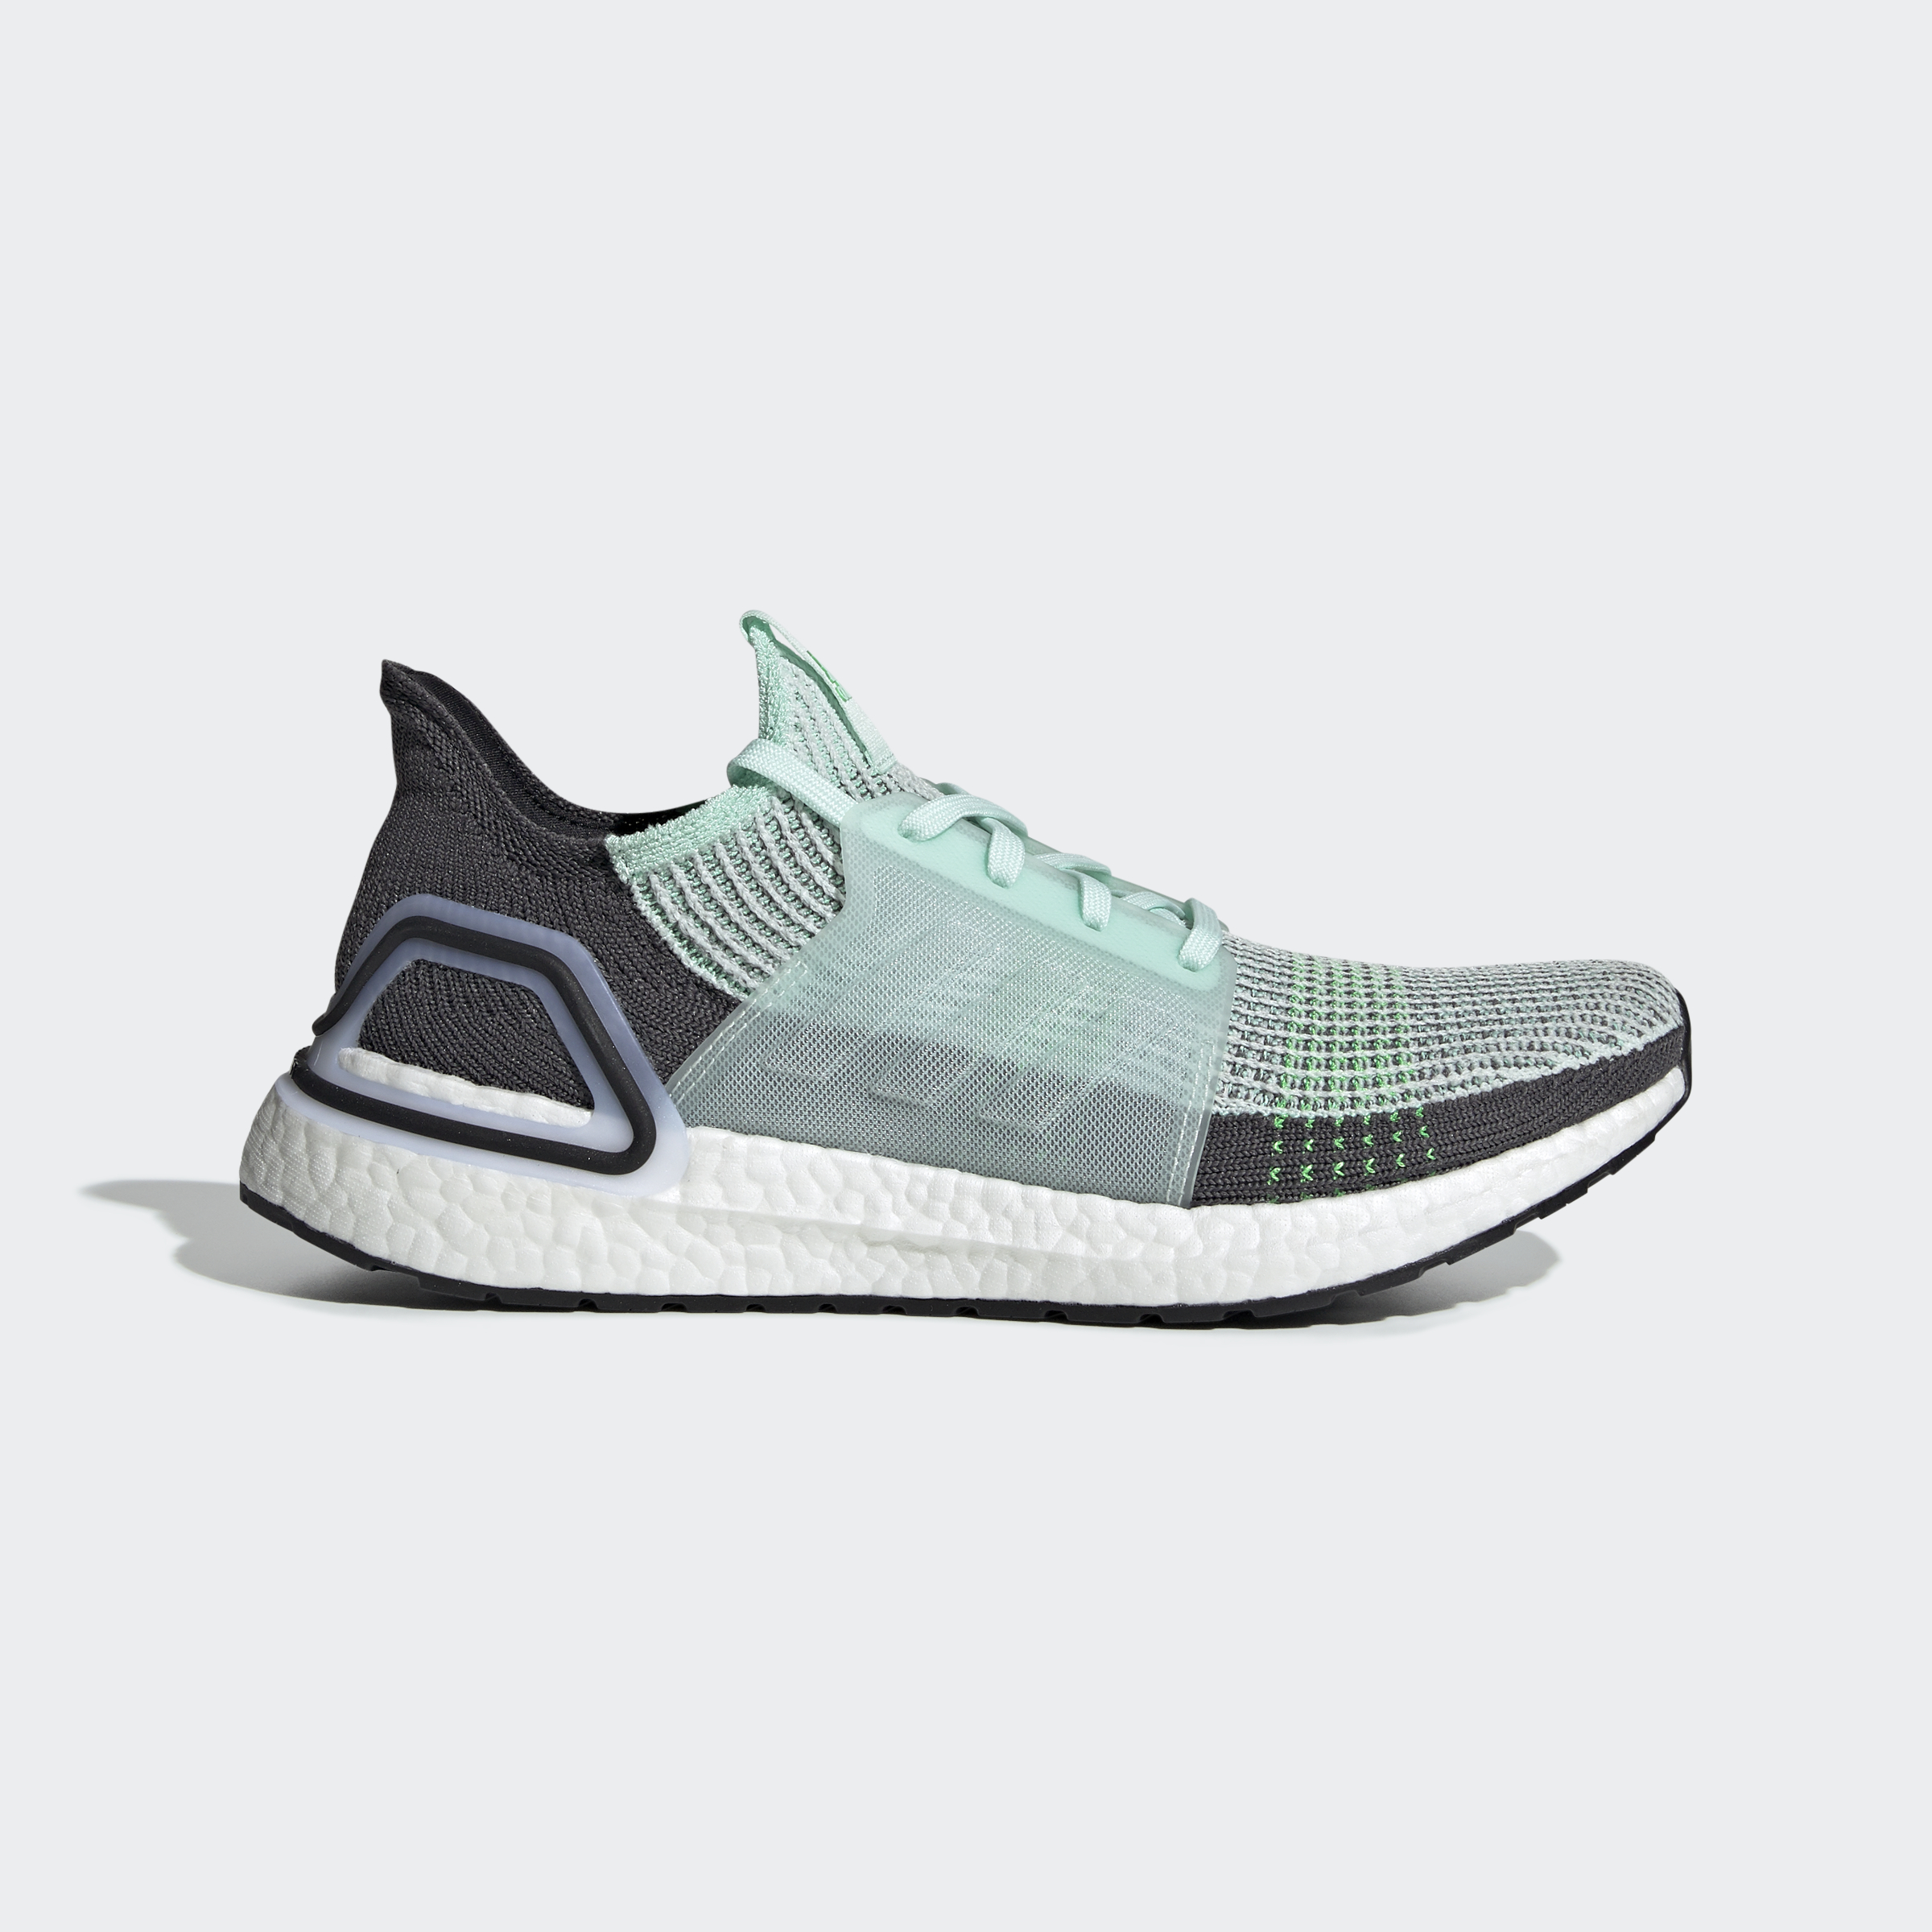 adidas-Ultraboost-19-Shoes-Athletic-amp-Sneakers thumbnail 38